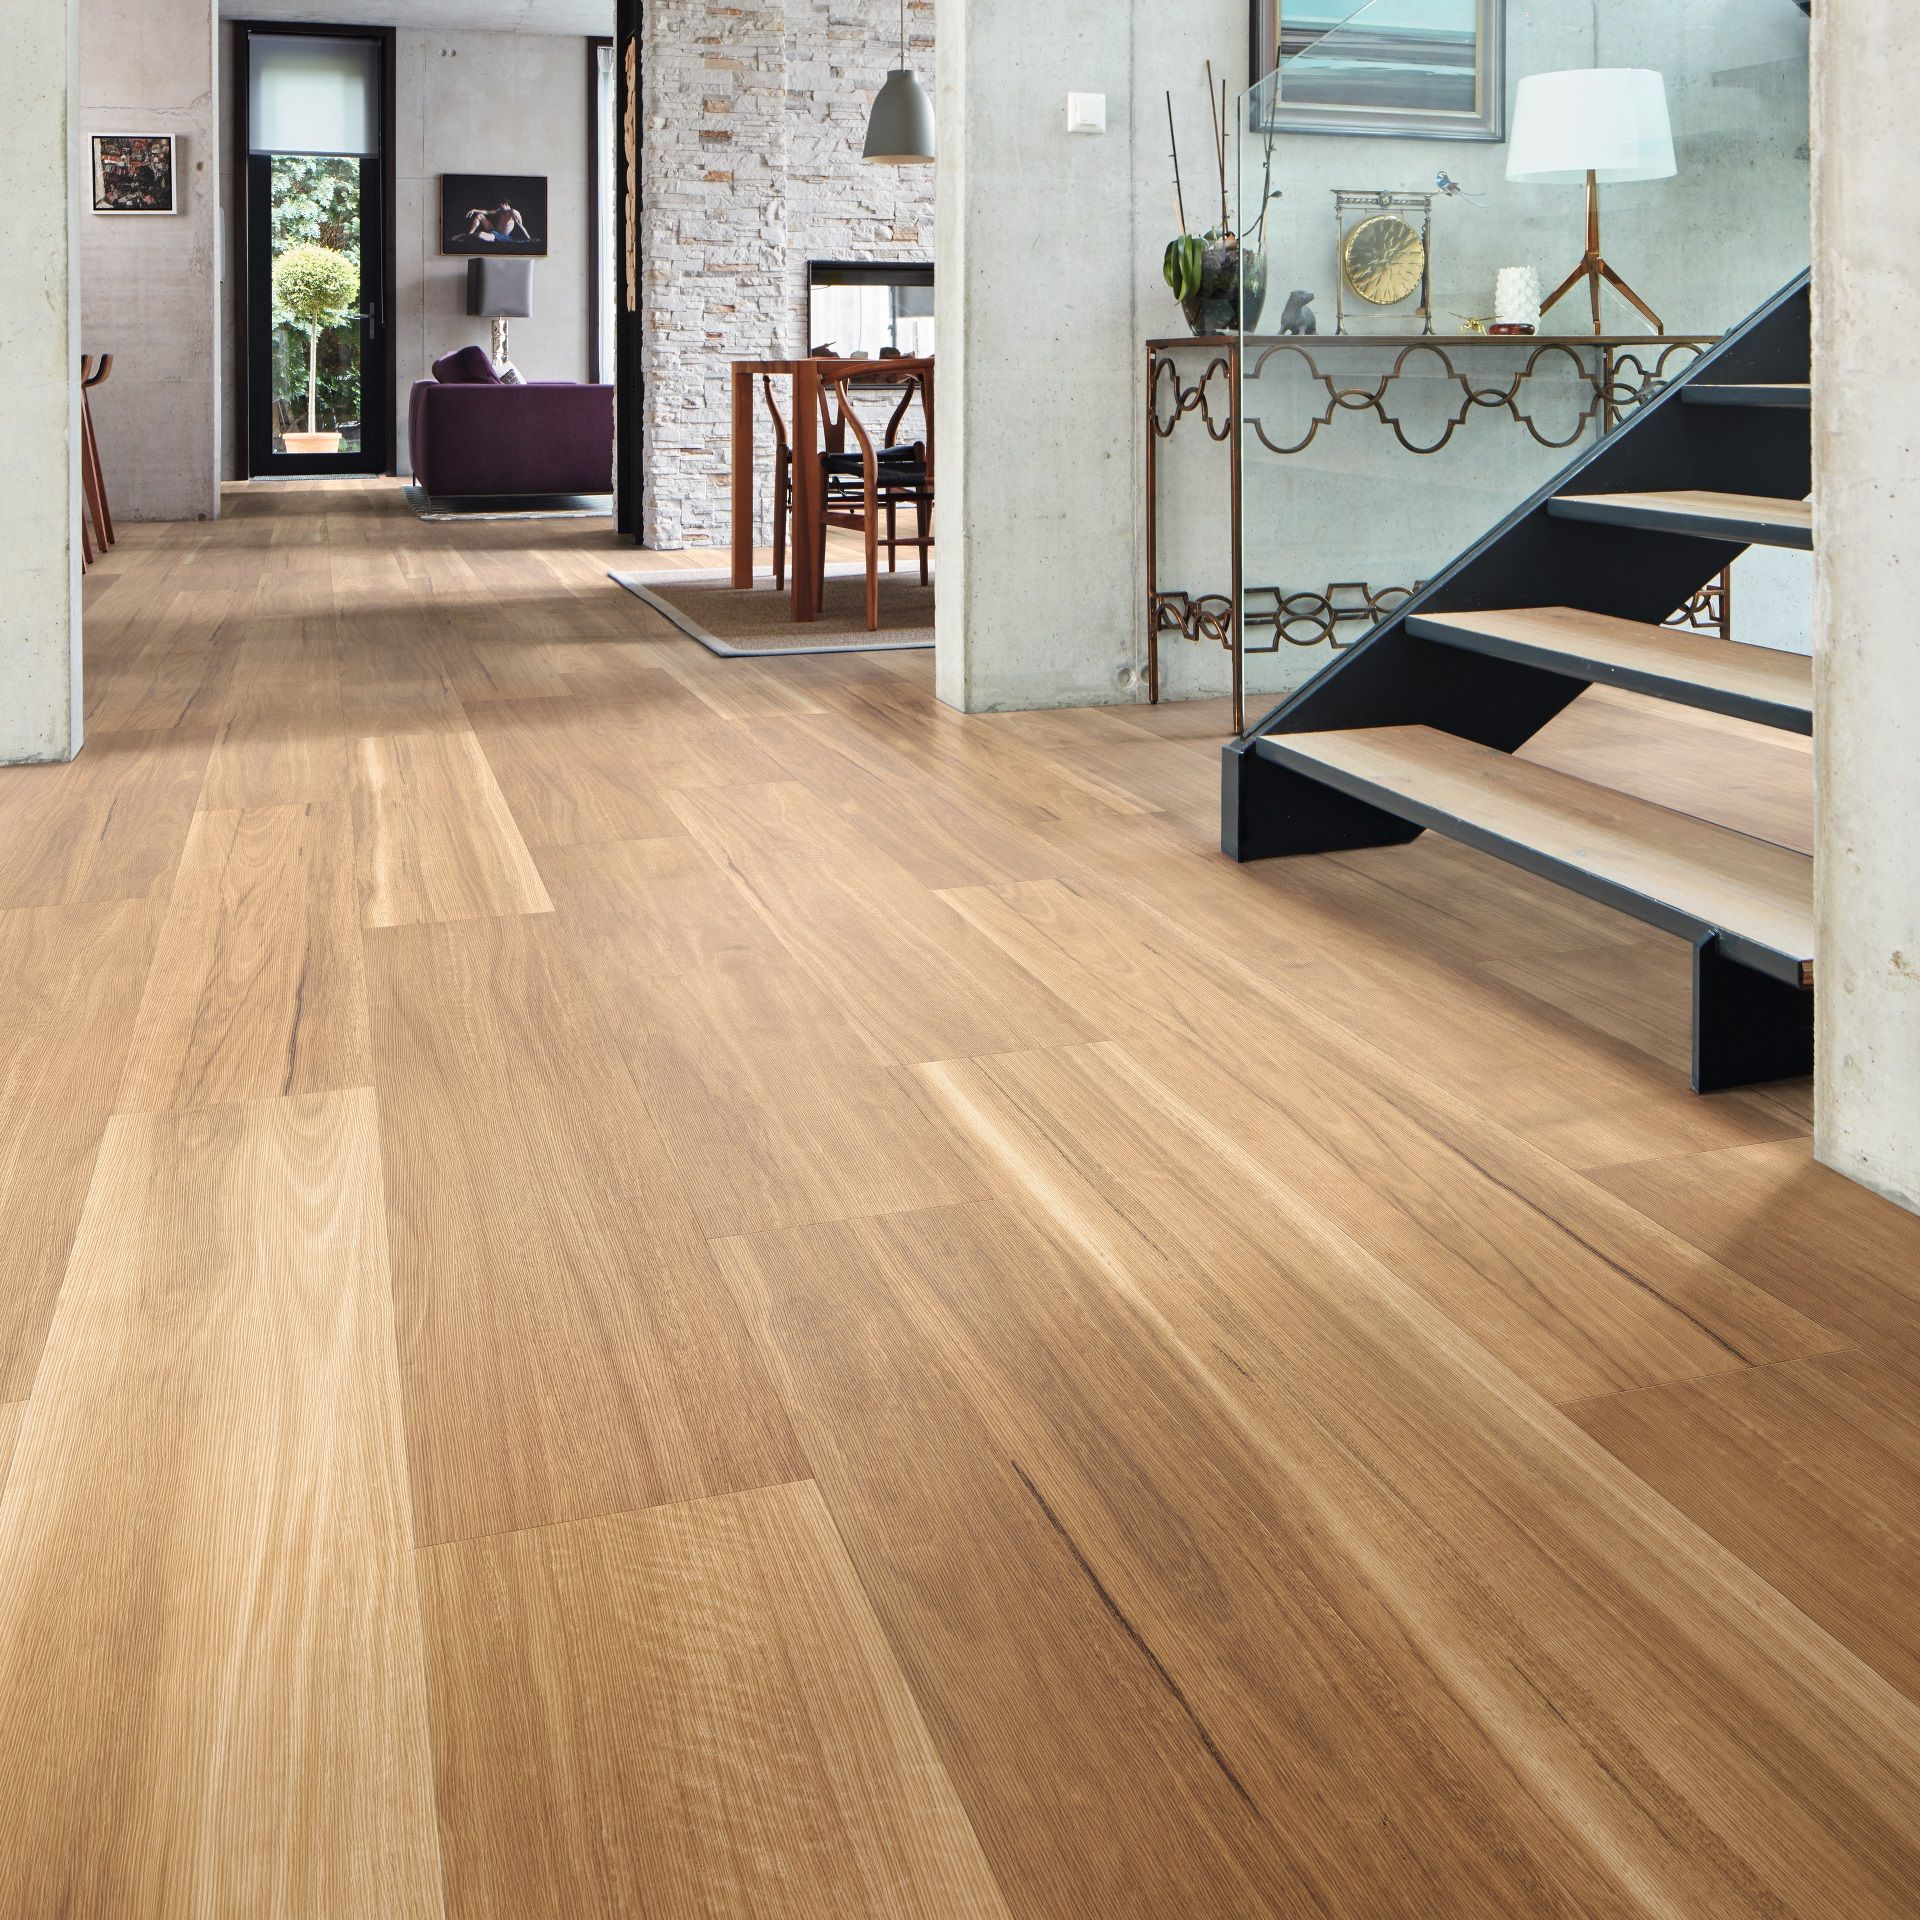 Karndean looselay longboard vinyl flooring collection for Pvc wood flooring